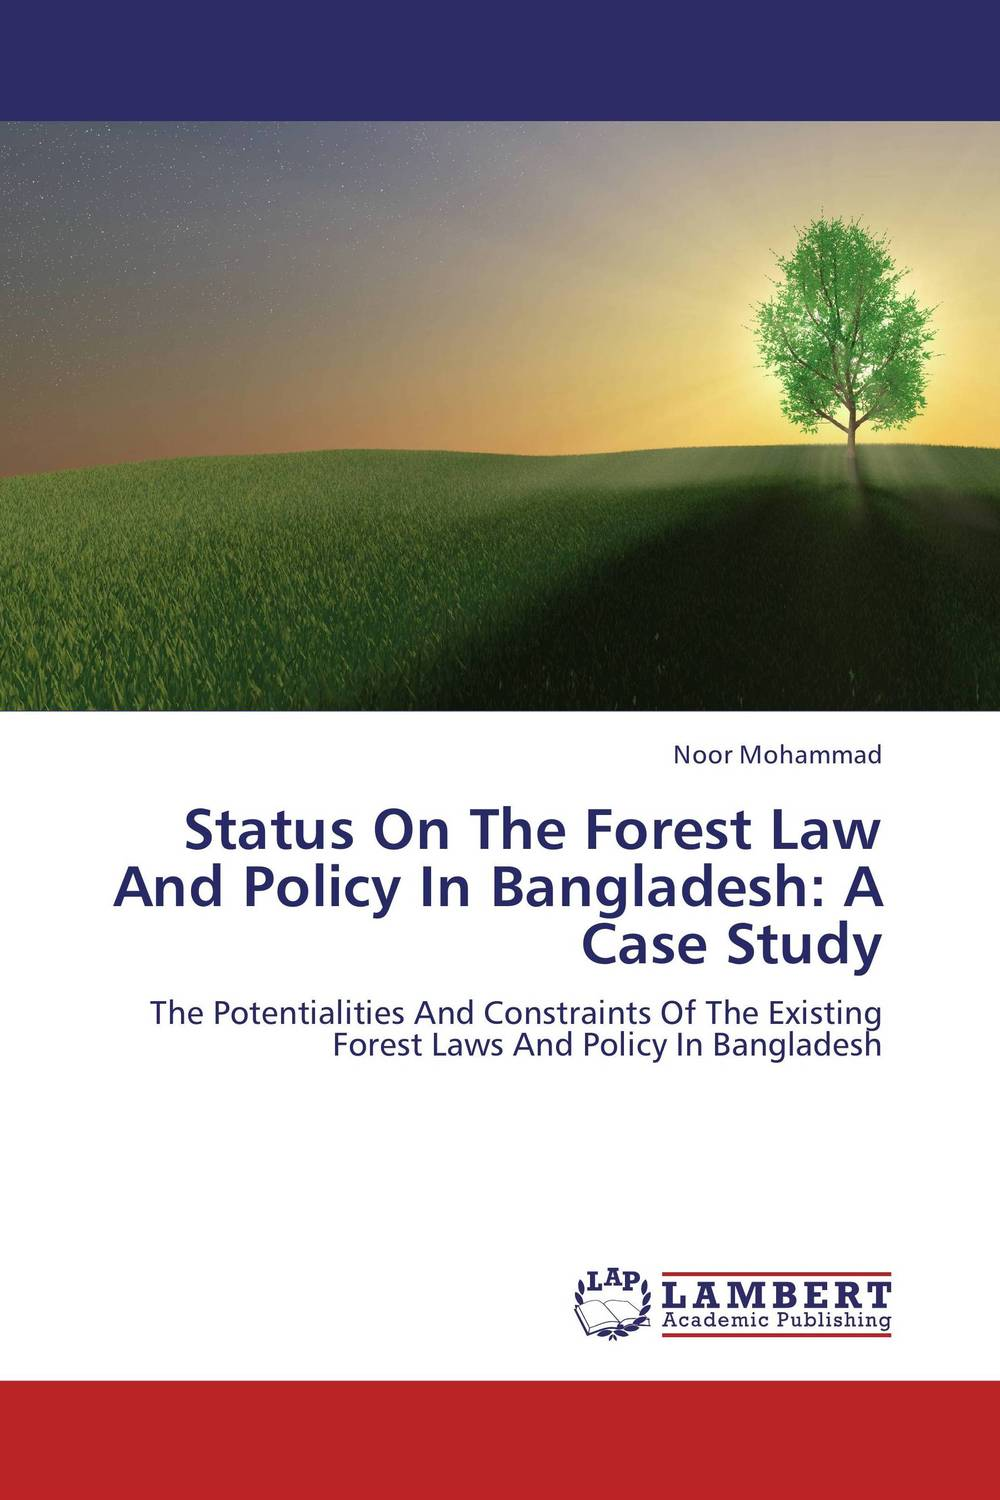 Status On The Forest Law And Policy In Bangladesh: A Case Study administrative corruption in bangladesh a behavioural study